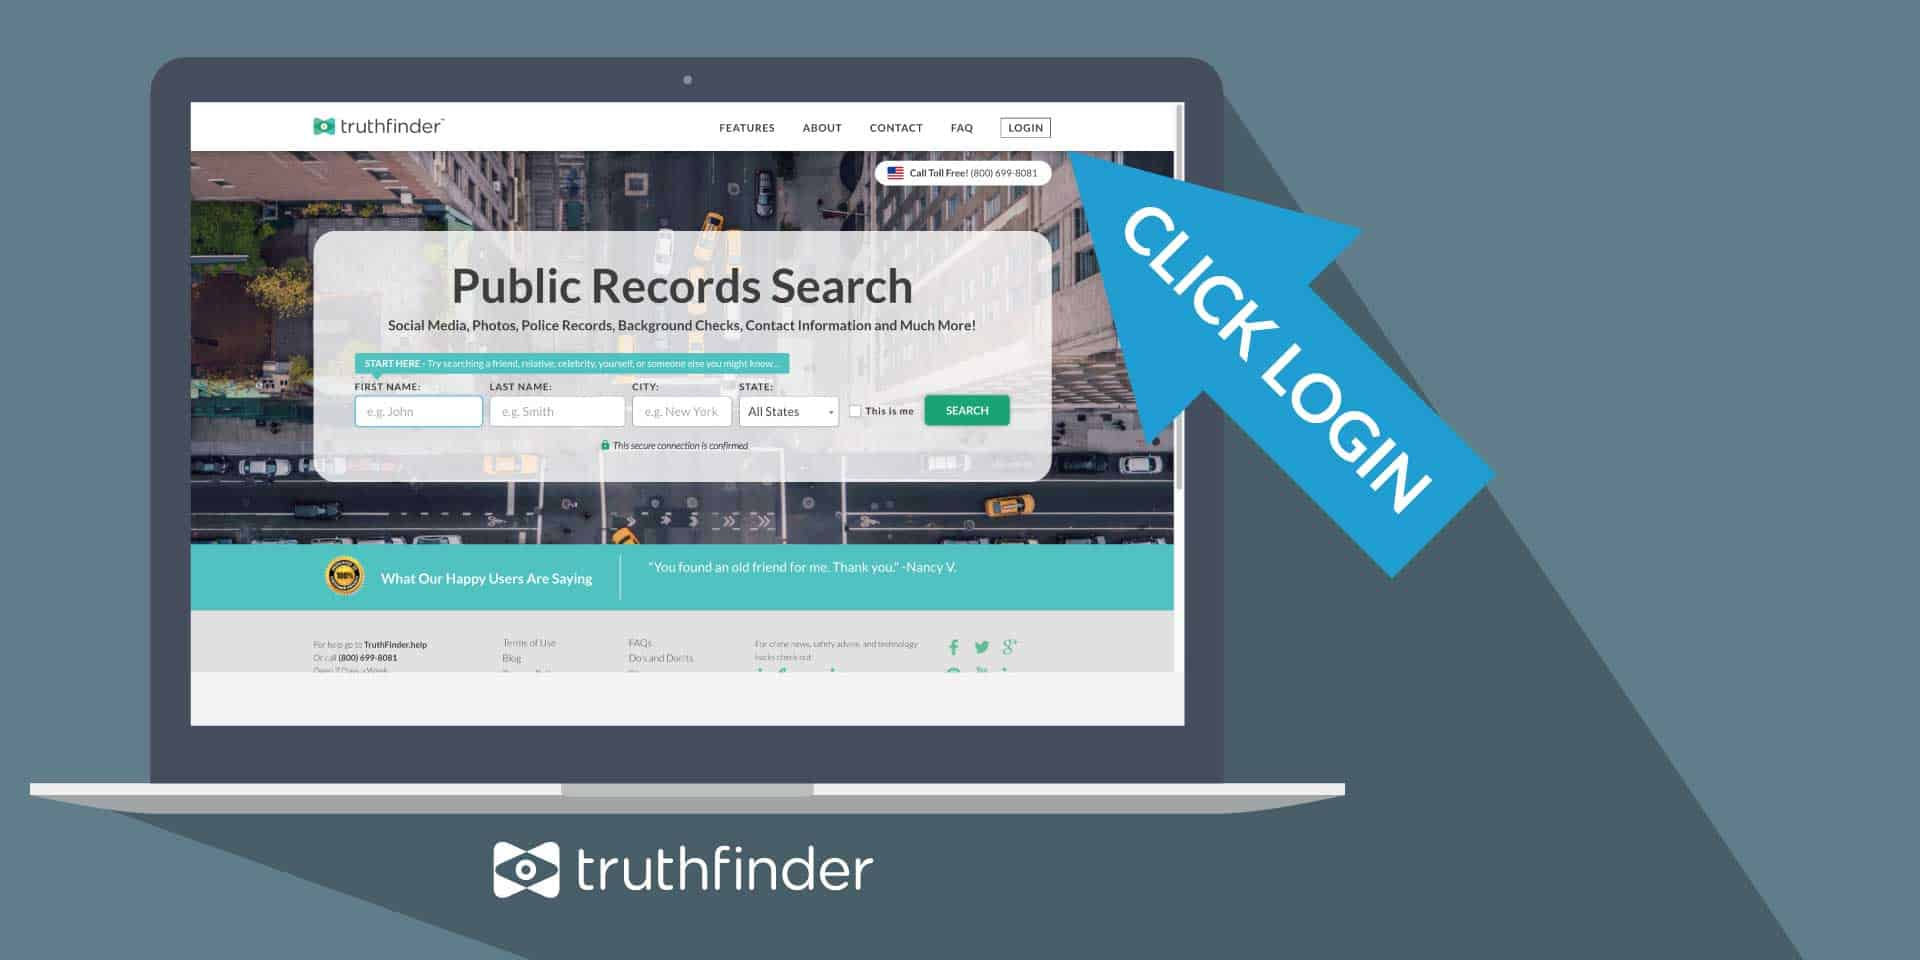 truthfinder.com website